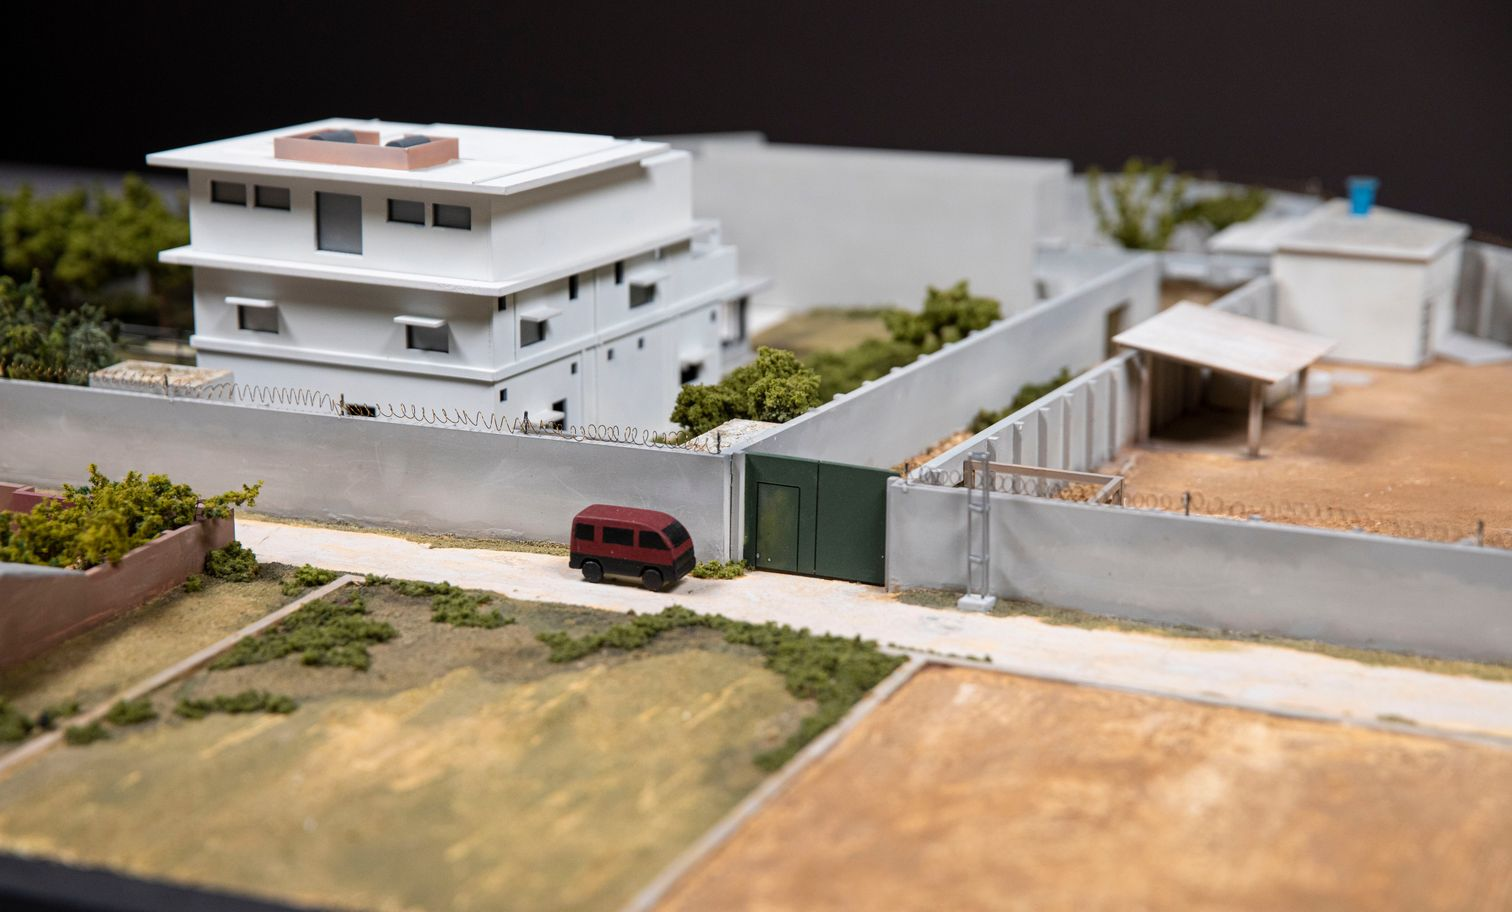 Aerial view of model of a walled white compound surrounded by predominantly brown landscape.